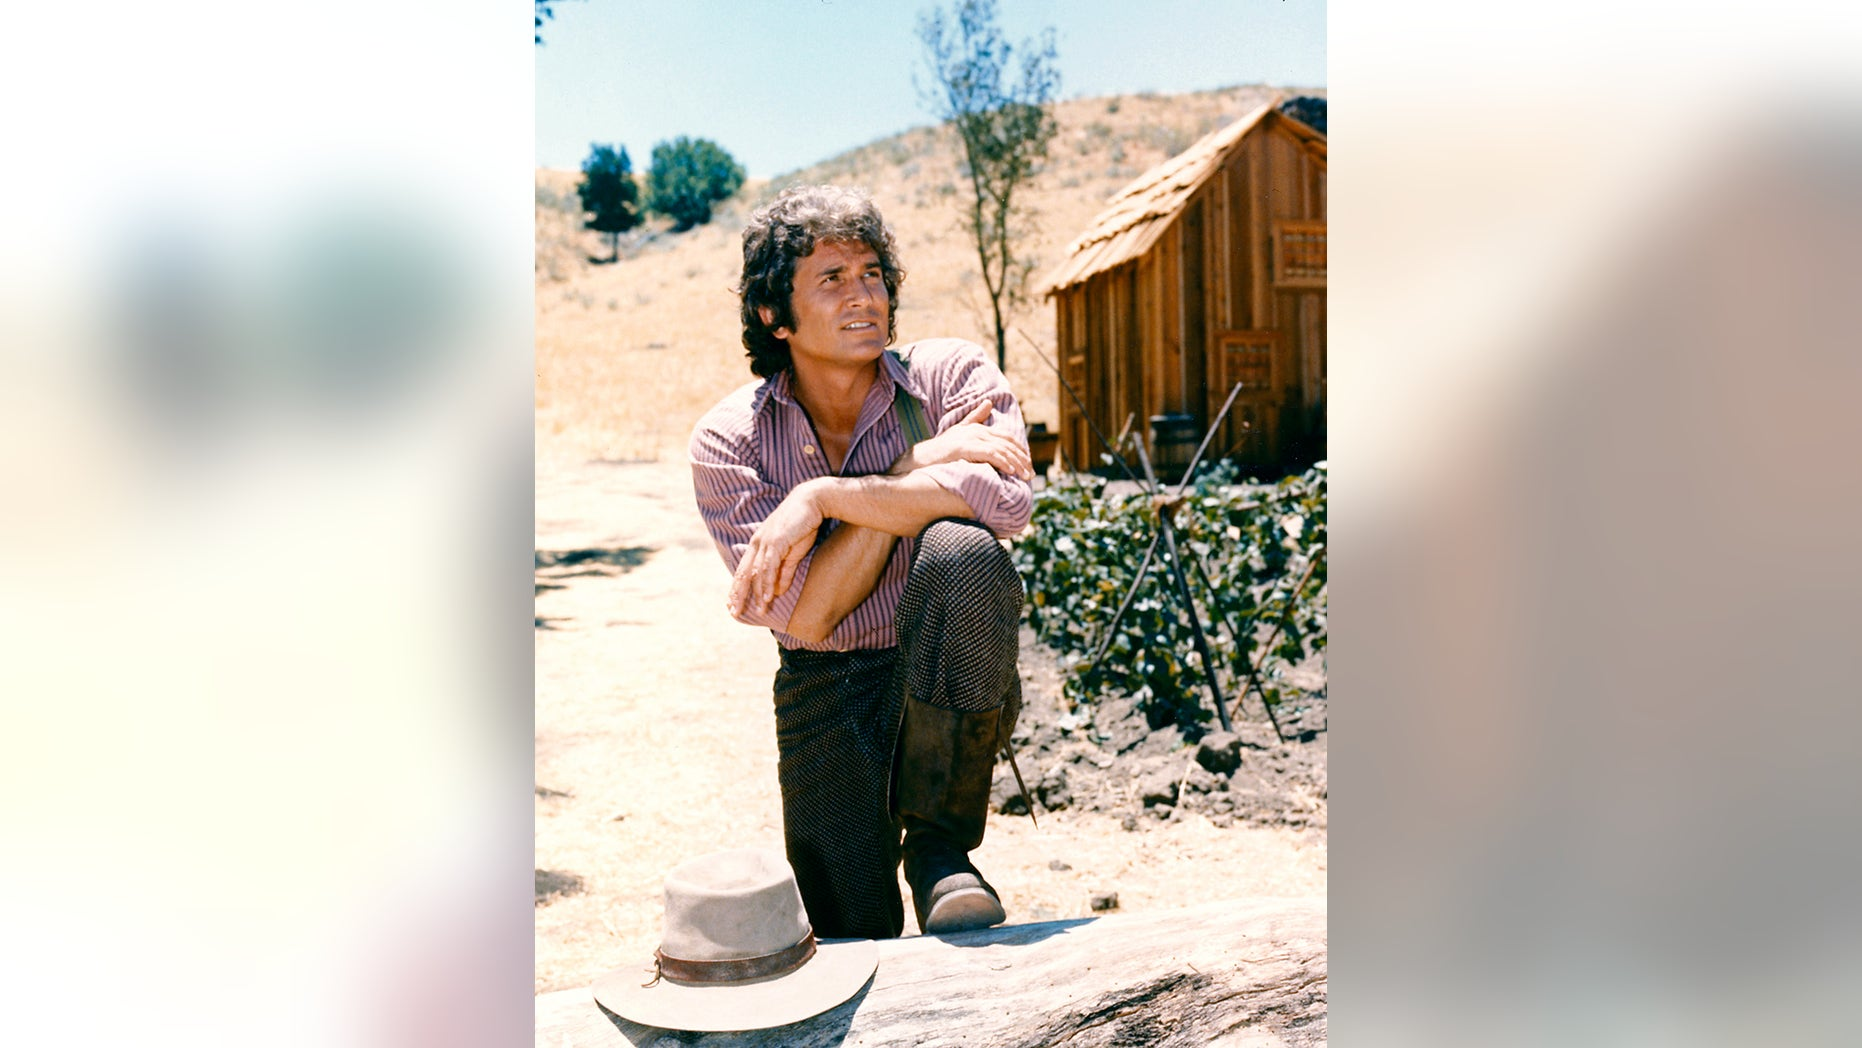 Michael Landon (1936-1991), US actor, poses with his arms crossed and resting on his knee with a log cabin the background in a portrait issued as publicity for the US television series, 'Little House on the Prairie', circa 1974. The drama, adapted from the novels by Laura Ingalls Wilder (1867-1957), starred Landon as 'Charles Ingalls'.